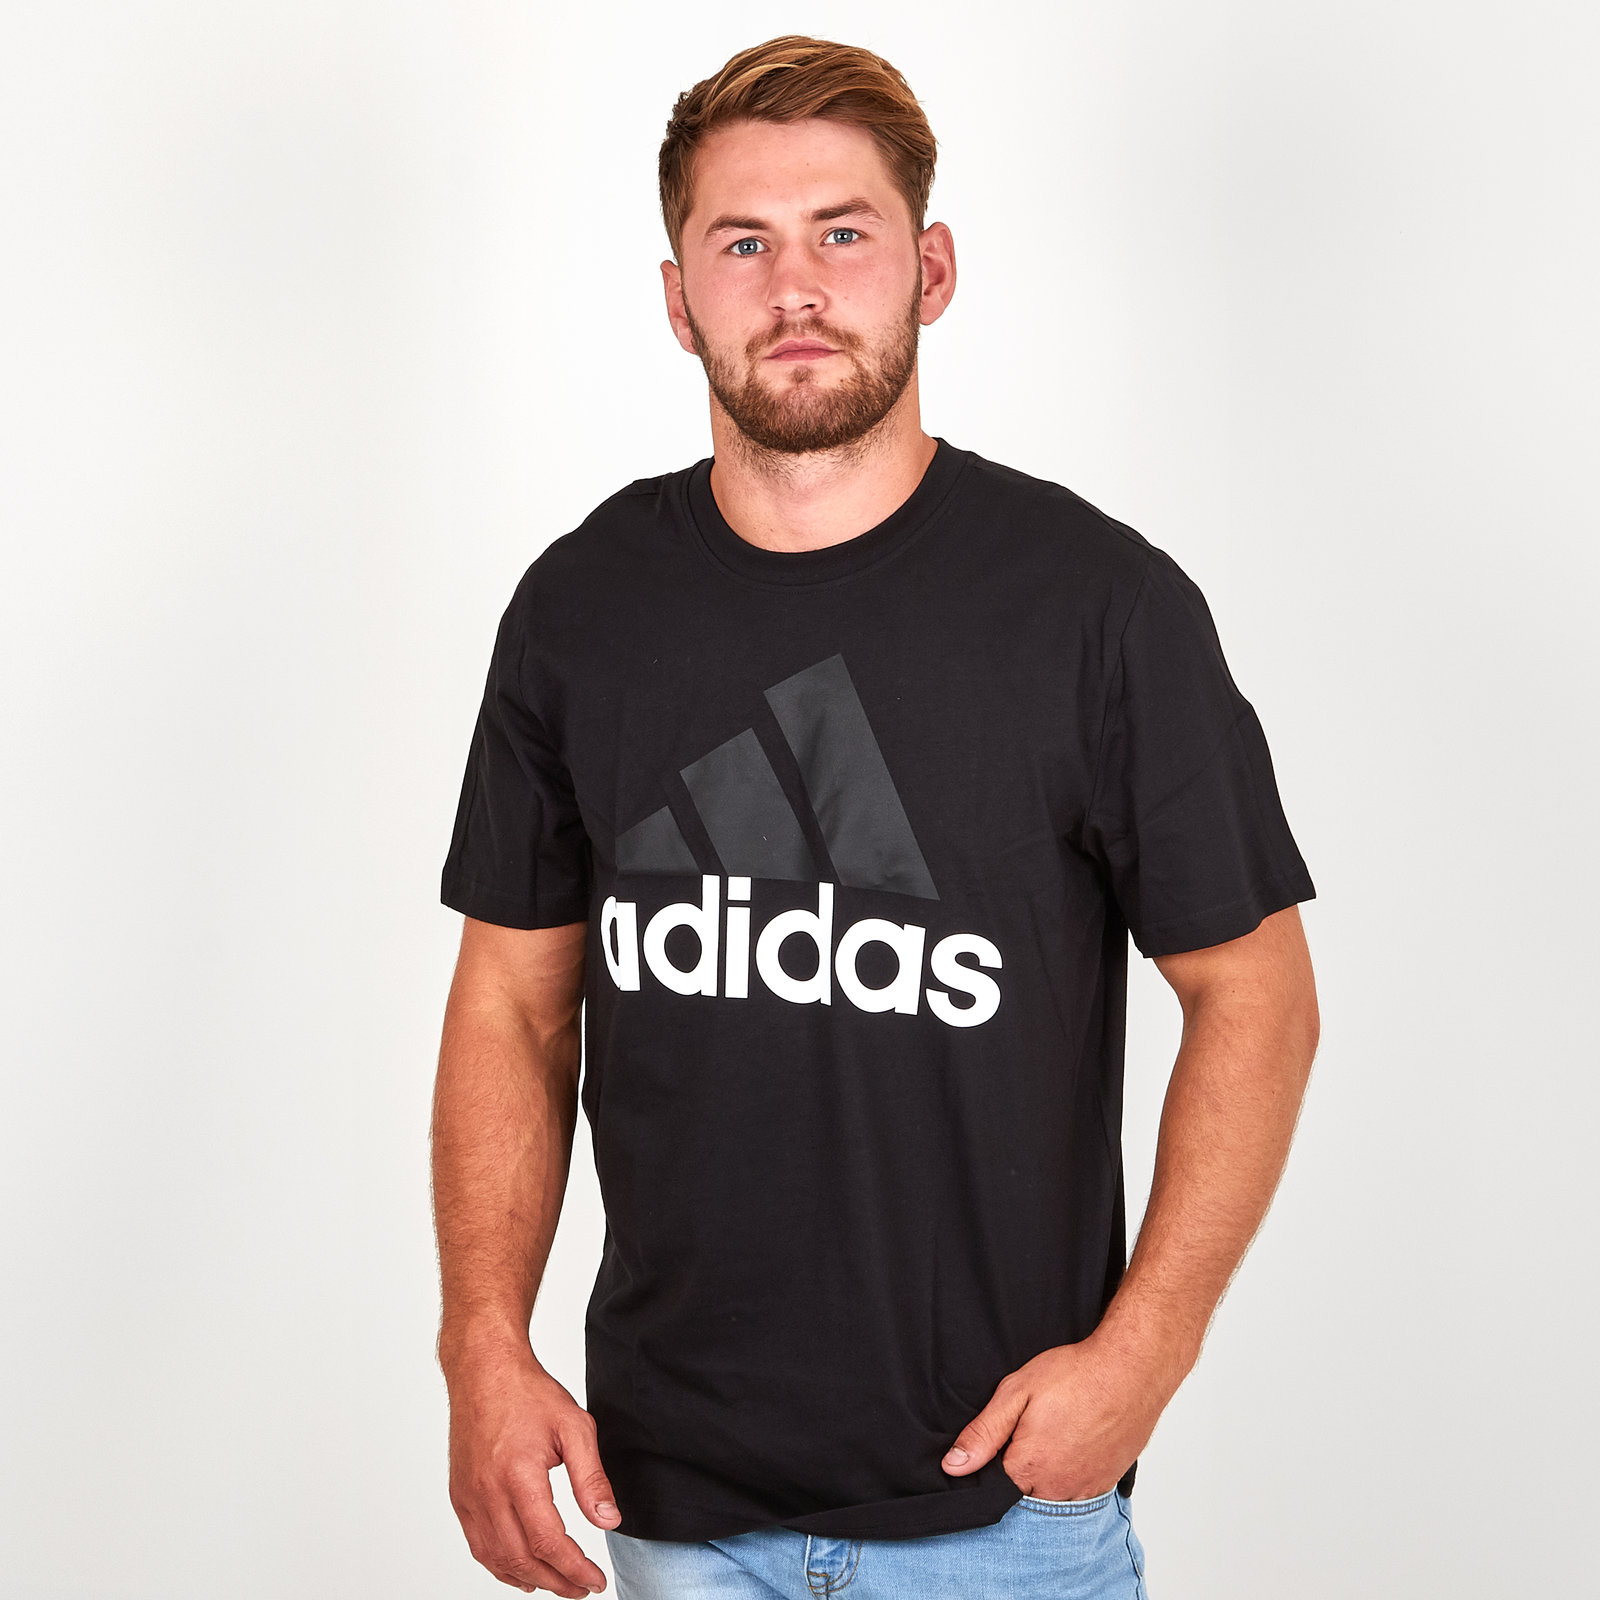 Details about adidas Mens Essential Linear T Shirt Tee Top Black